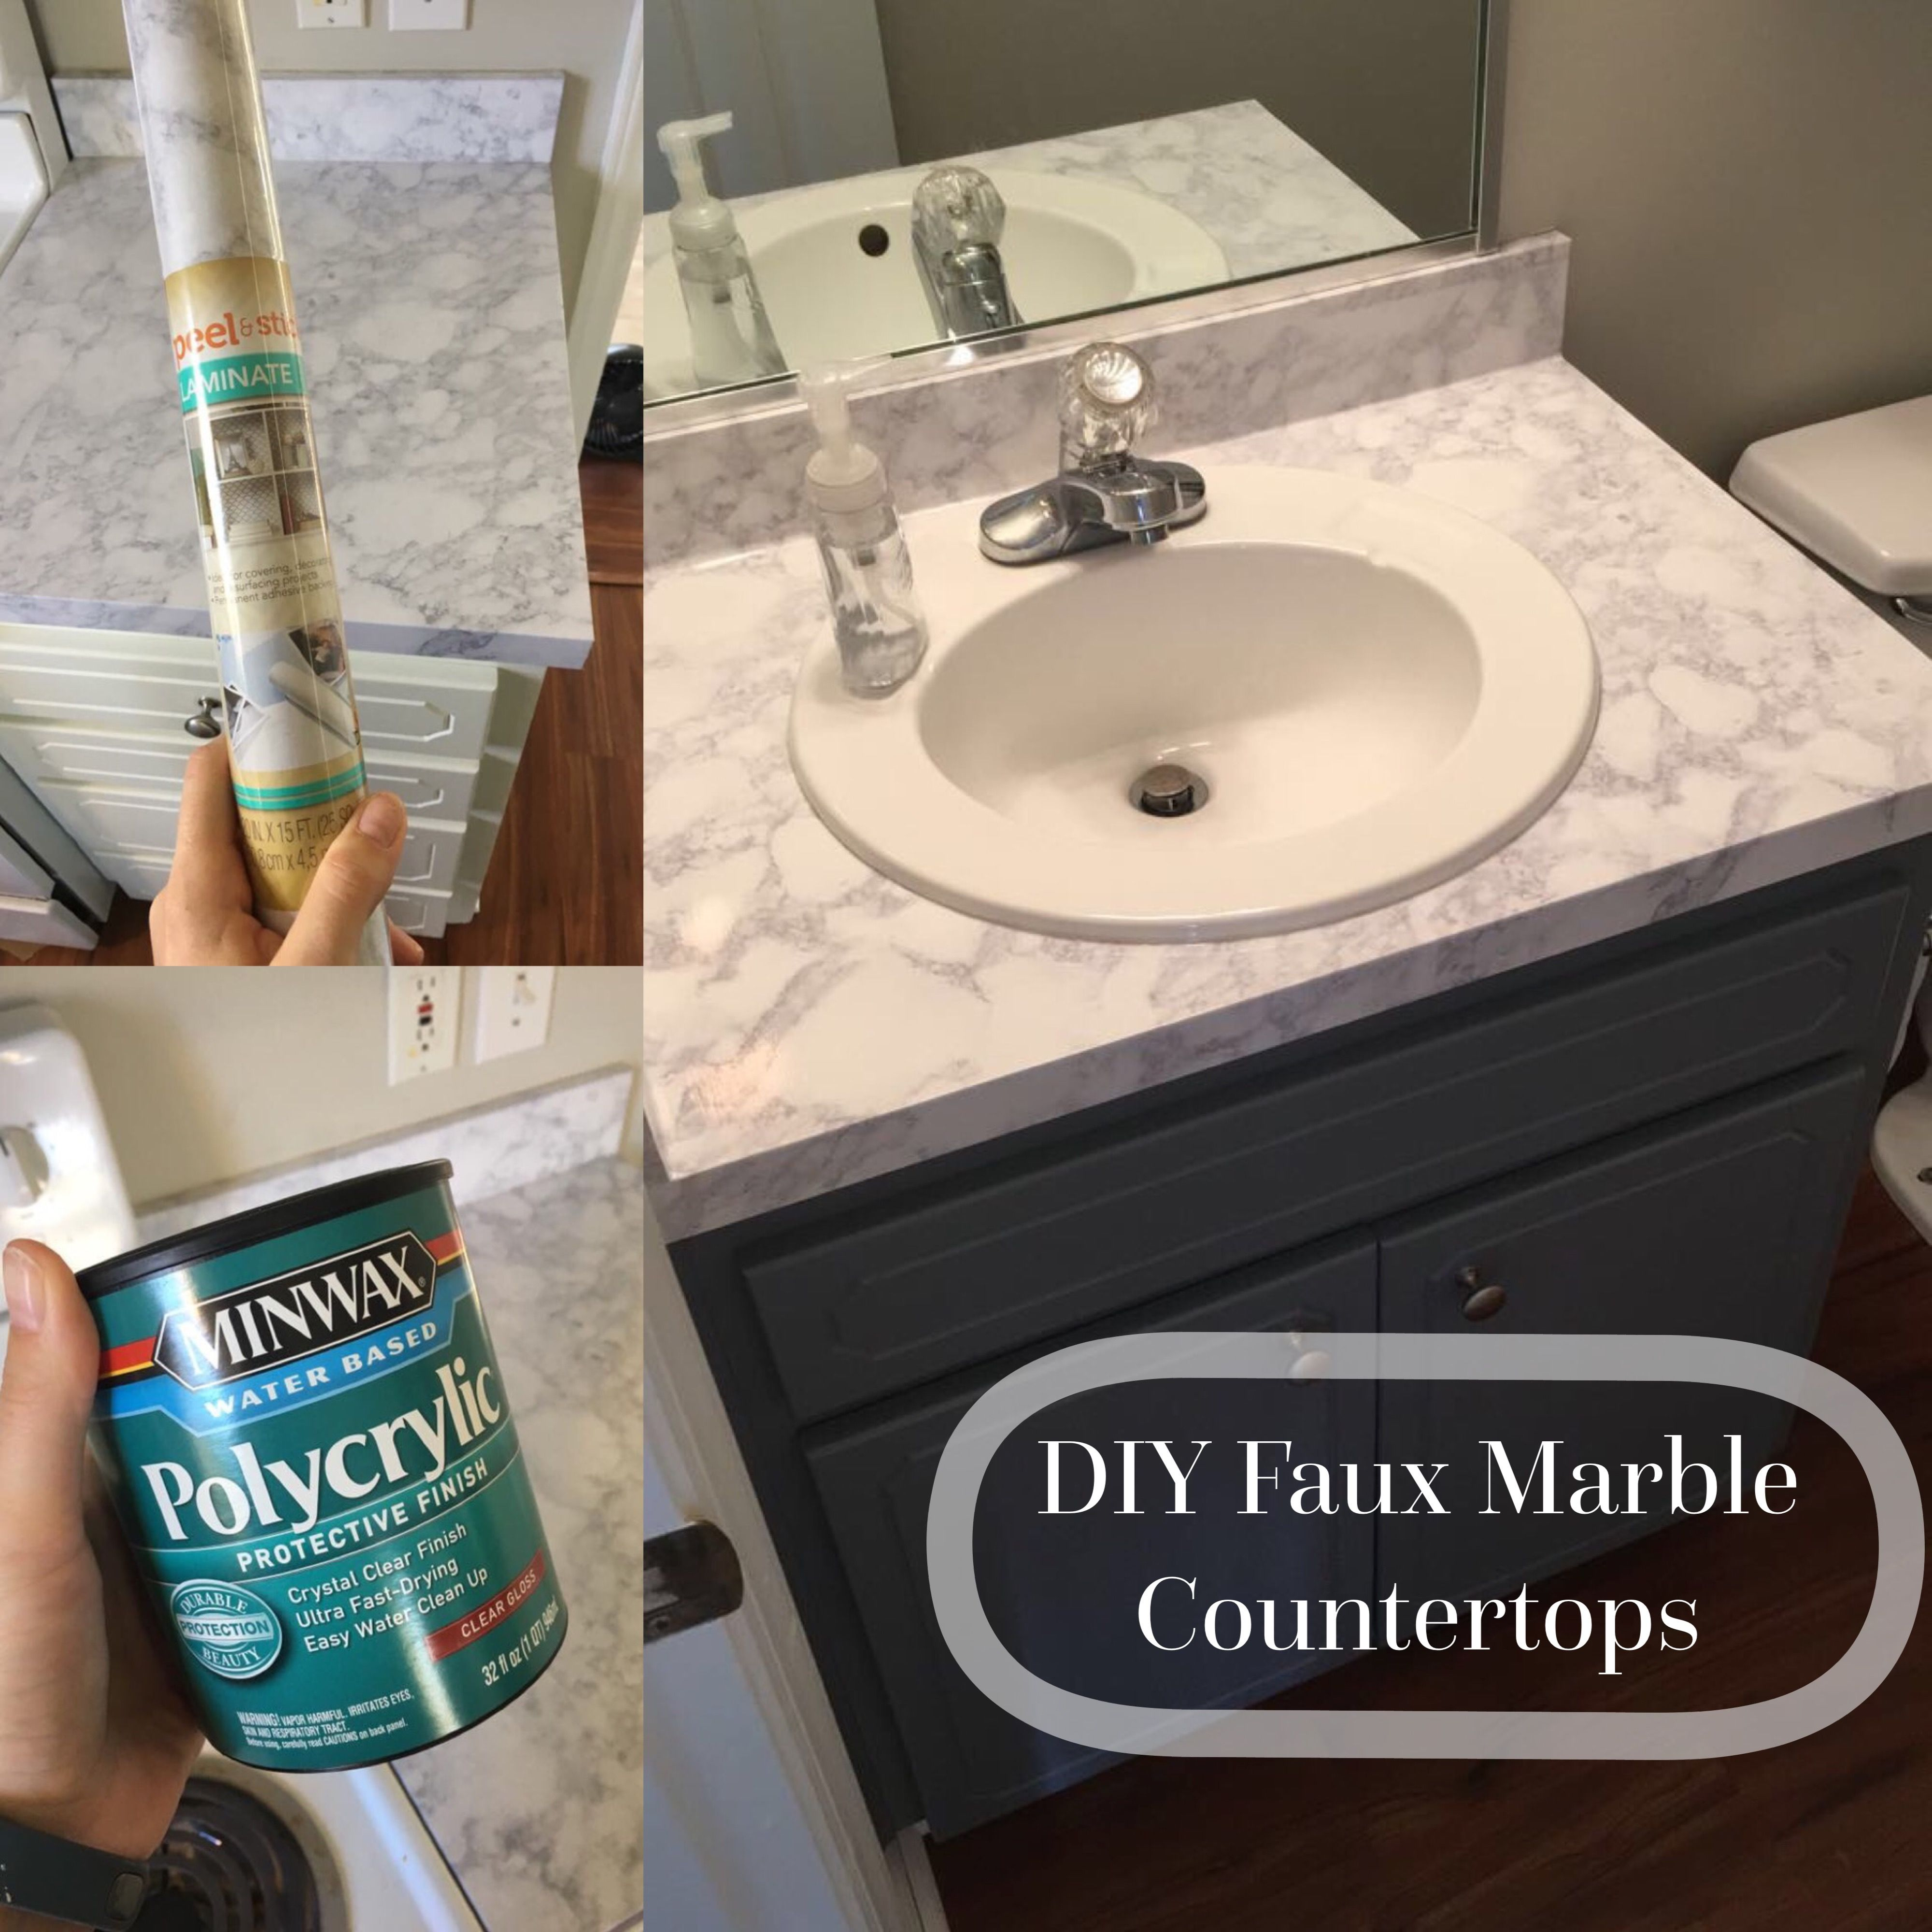 Diy Fauxmarble Countertops Peel And Stick Laminate Sealed With